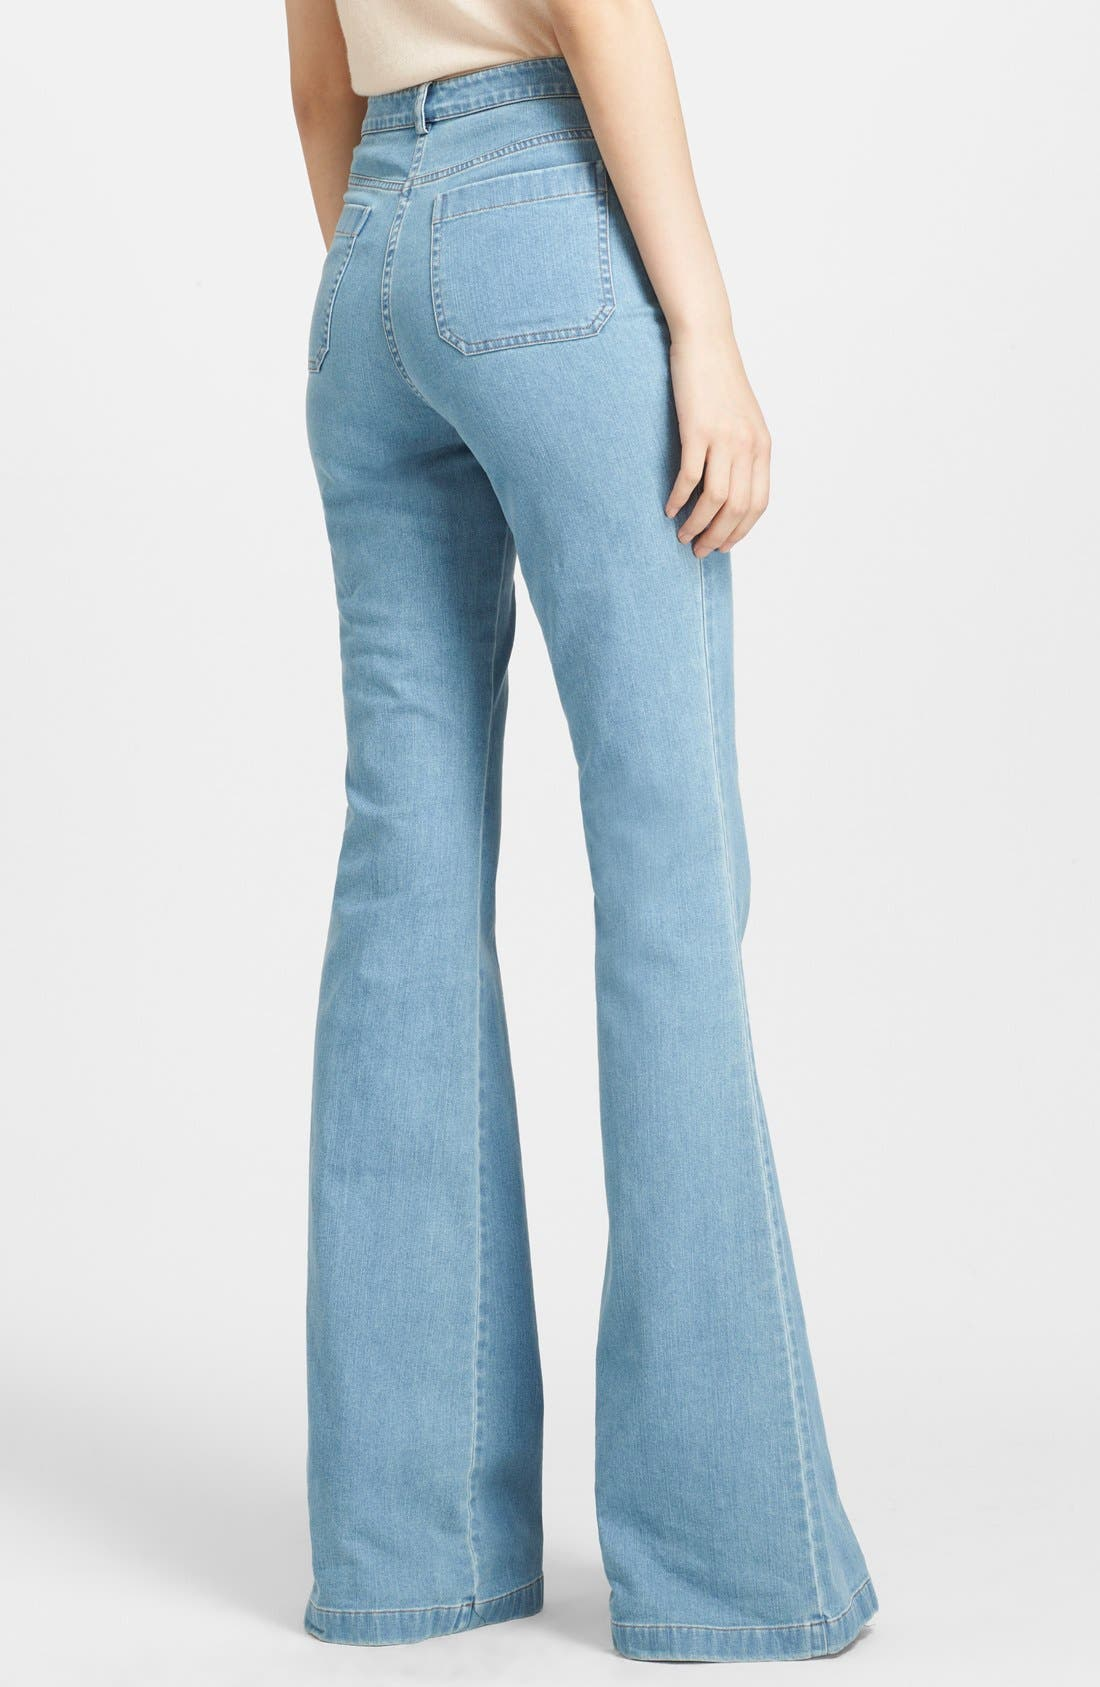 Alternate Image 2  - Michael Kors Bell Bottom Stretch Jeans